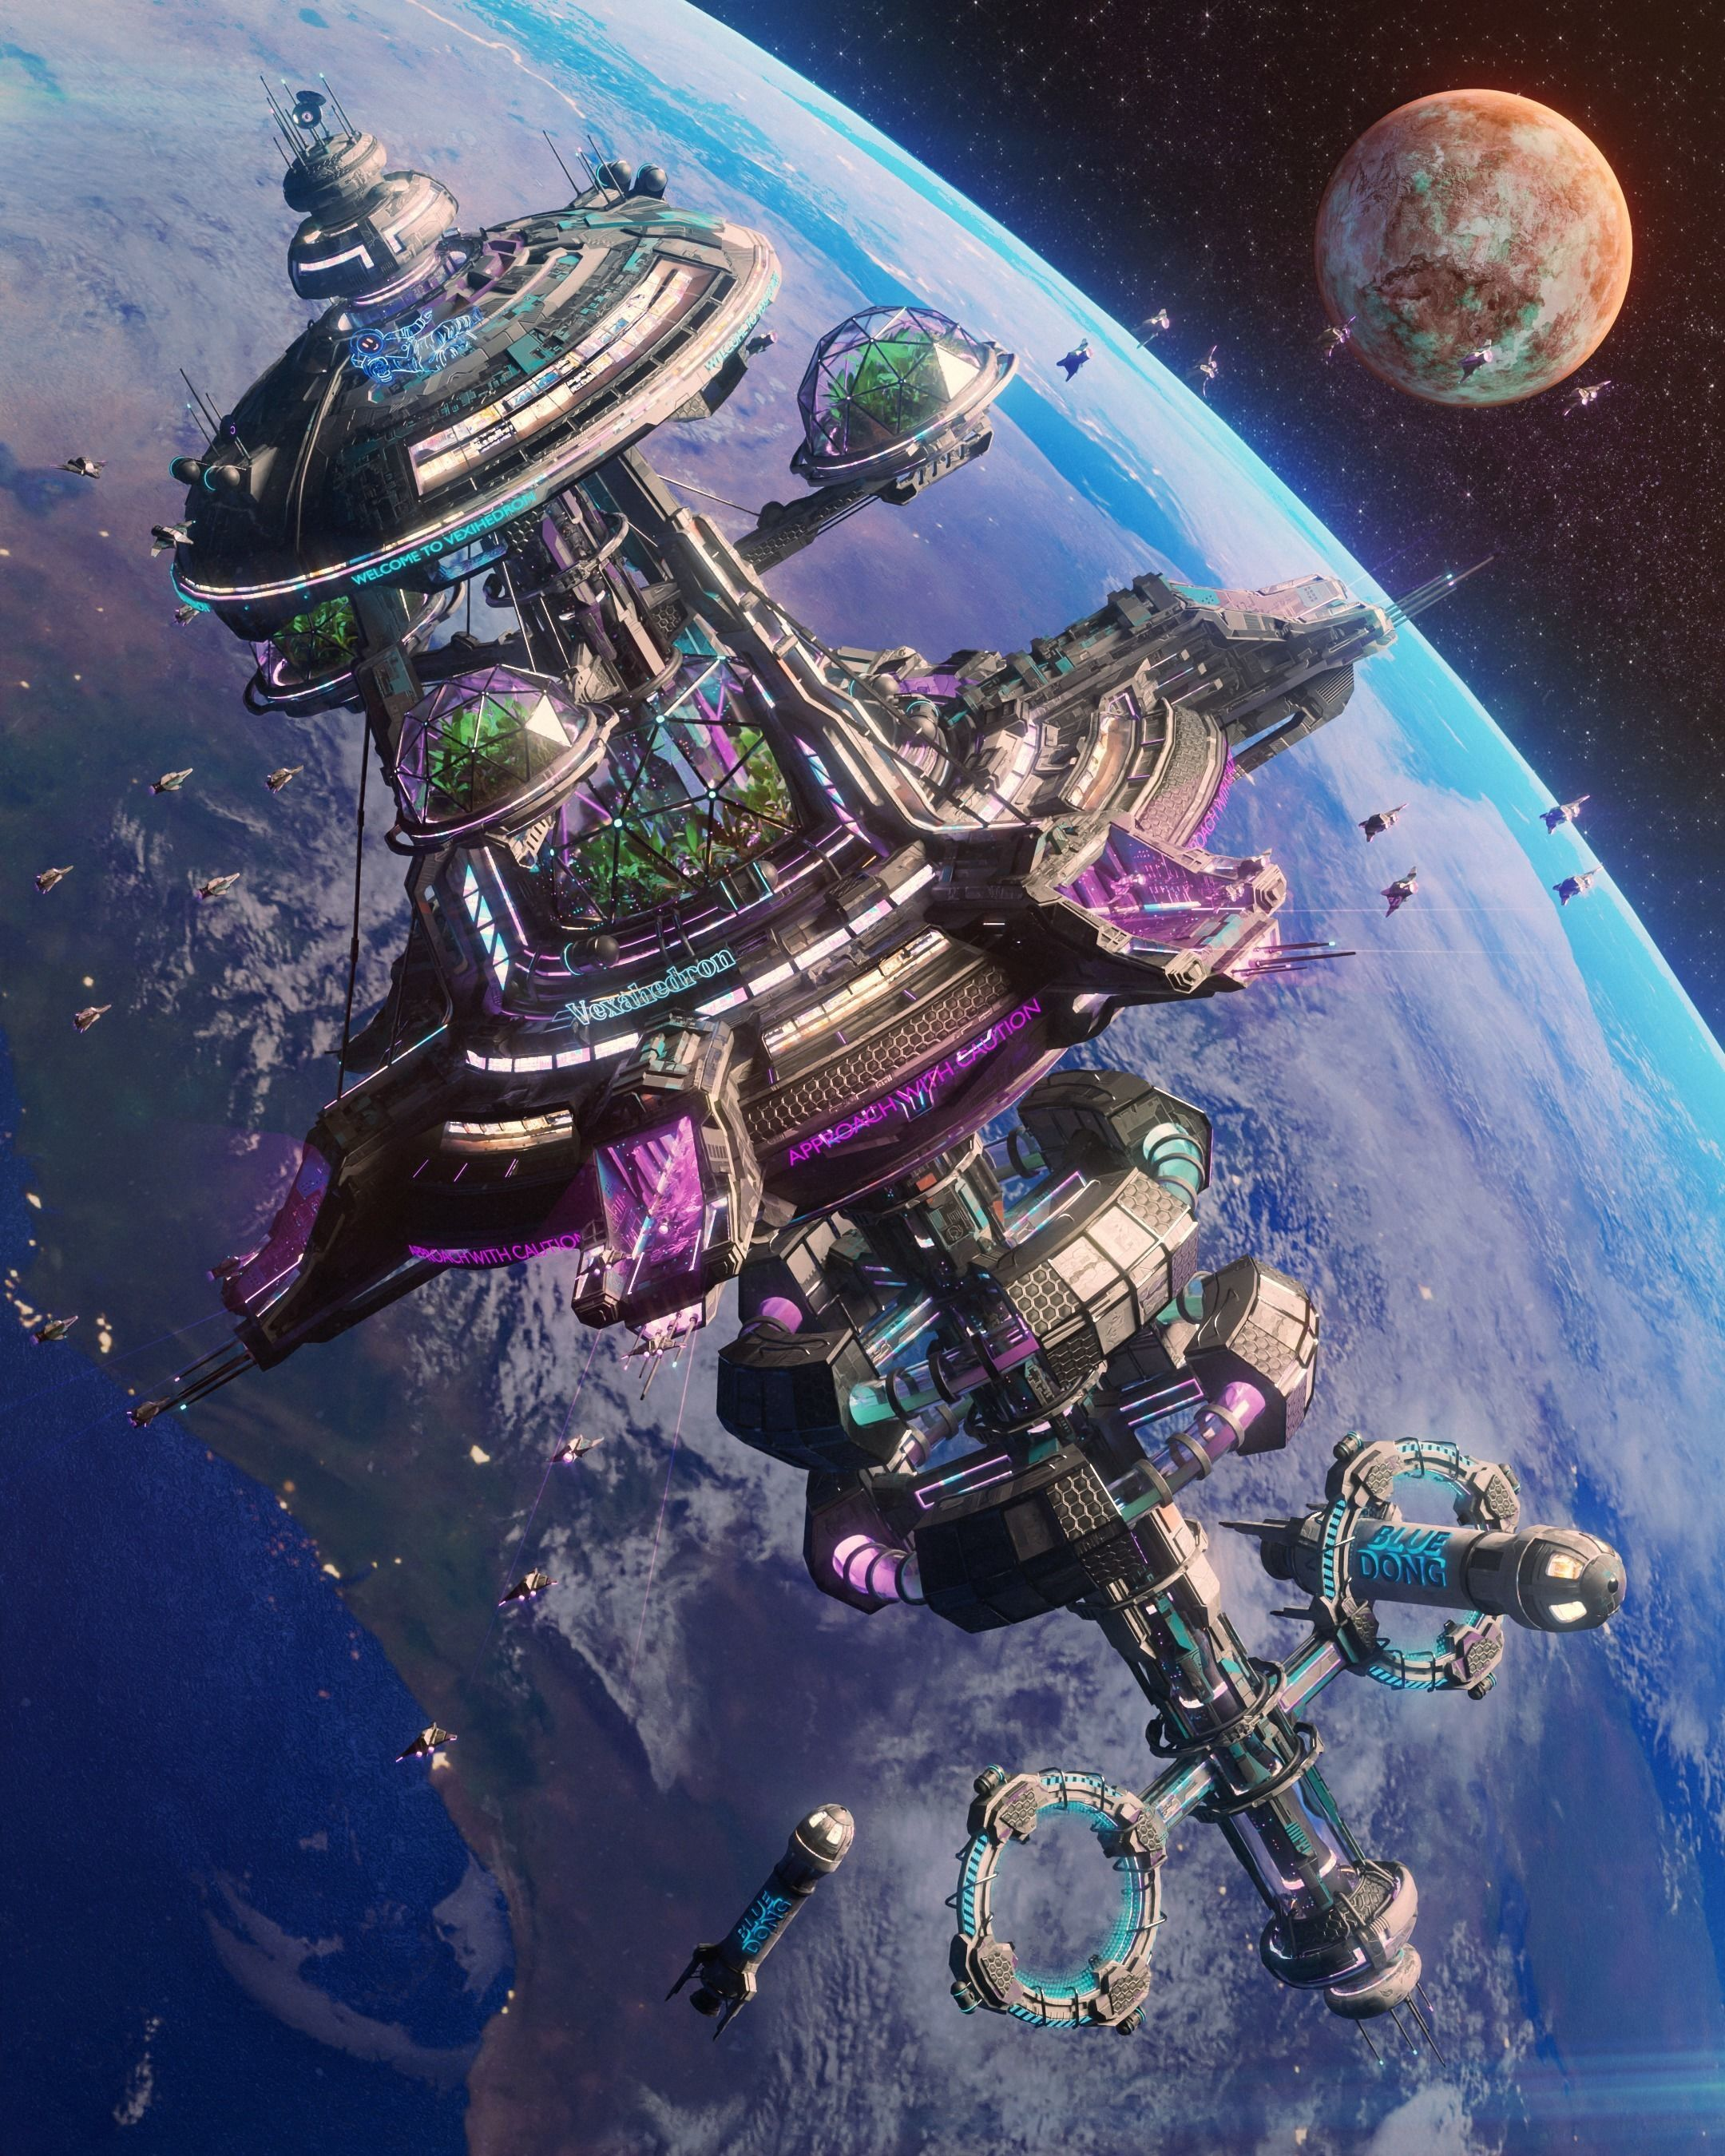 SpaceShip Diner with Docking for Spaceships by Bezos - 3D Weekly